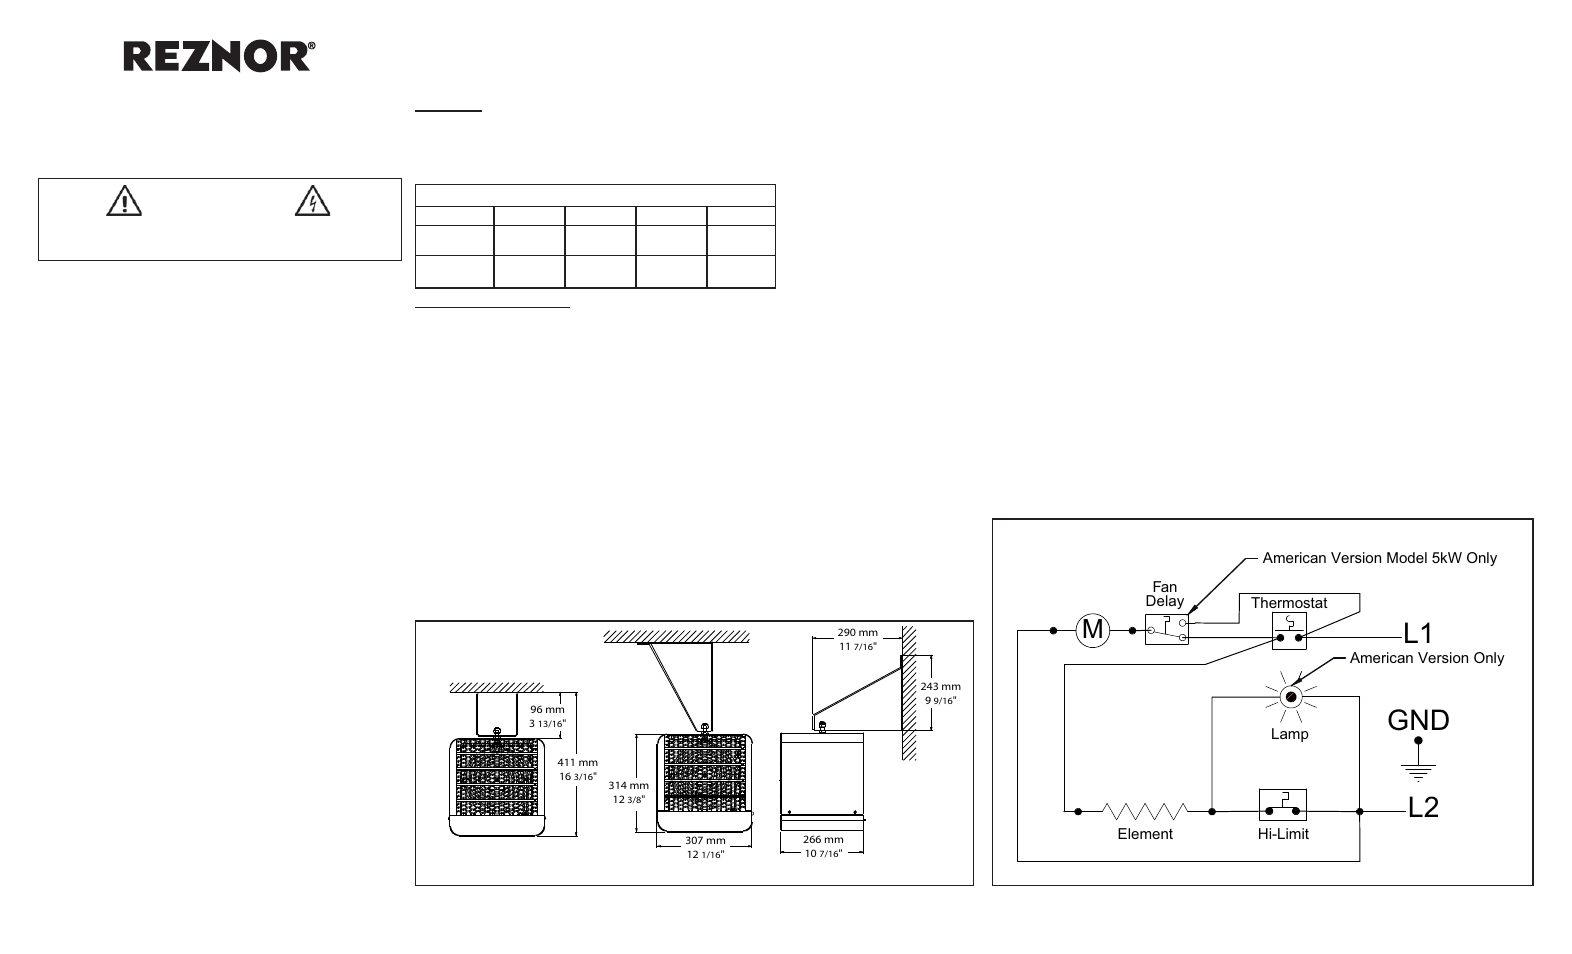 reznor egw unit installation manual page1 reznor egw unit installation manual manuel d'utilisation pages 2 Reznor F100 Wiring Diagram at crackthecode.co